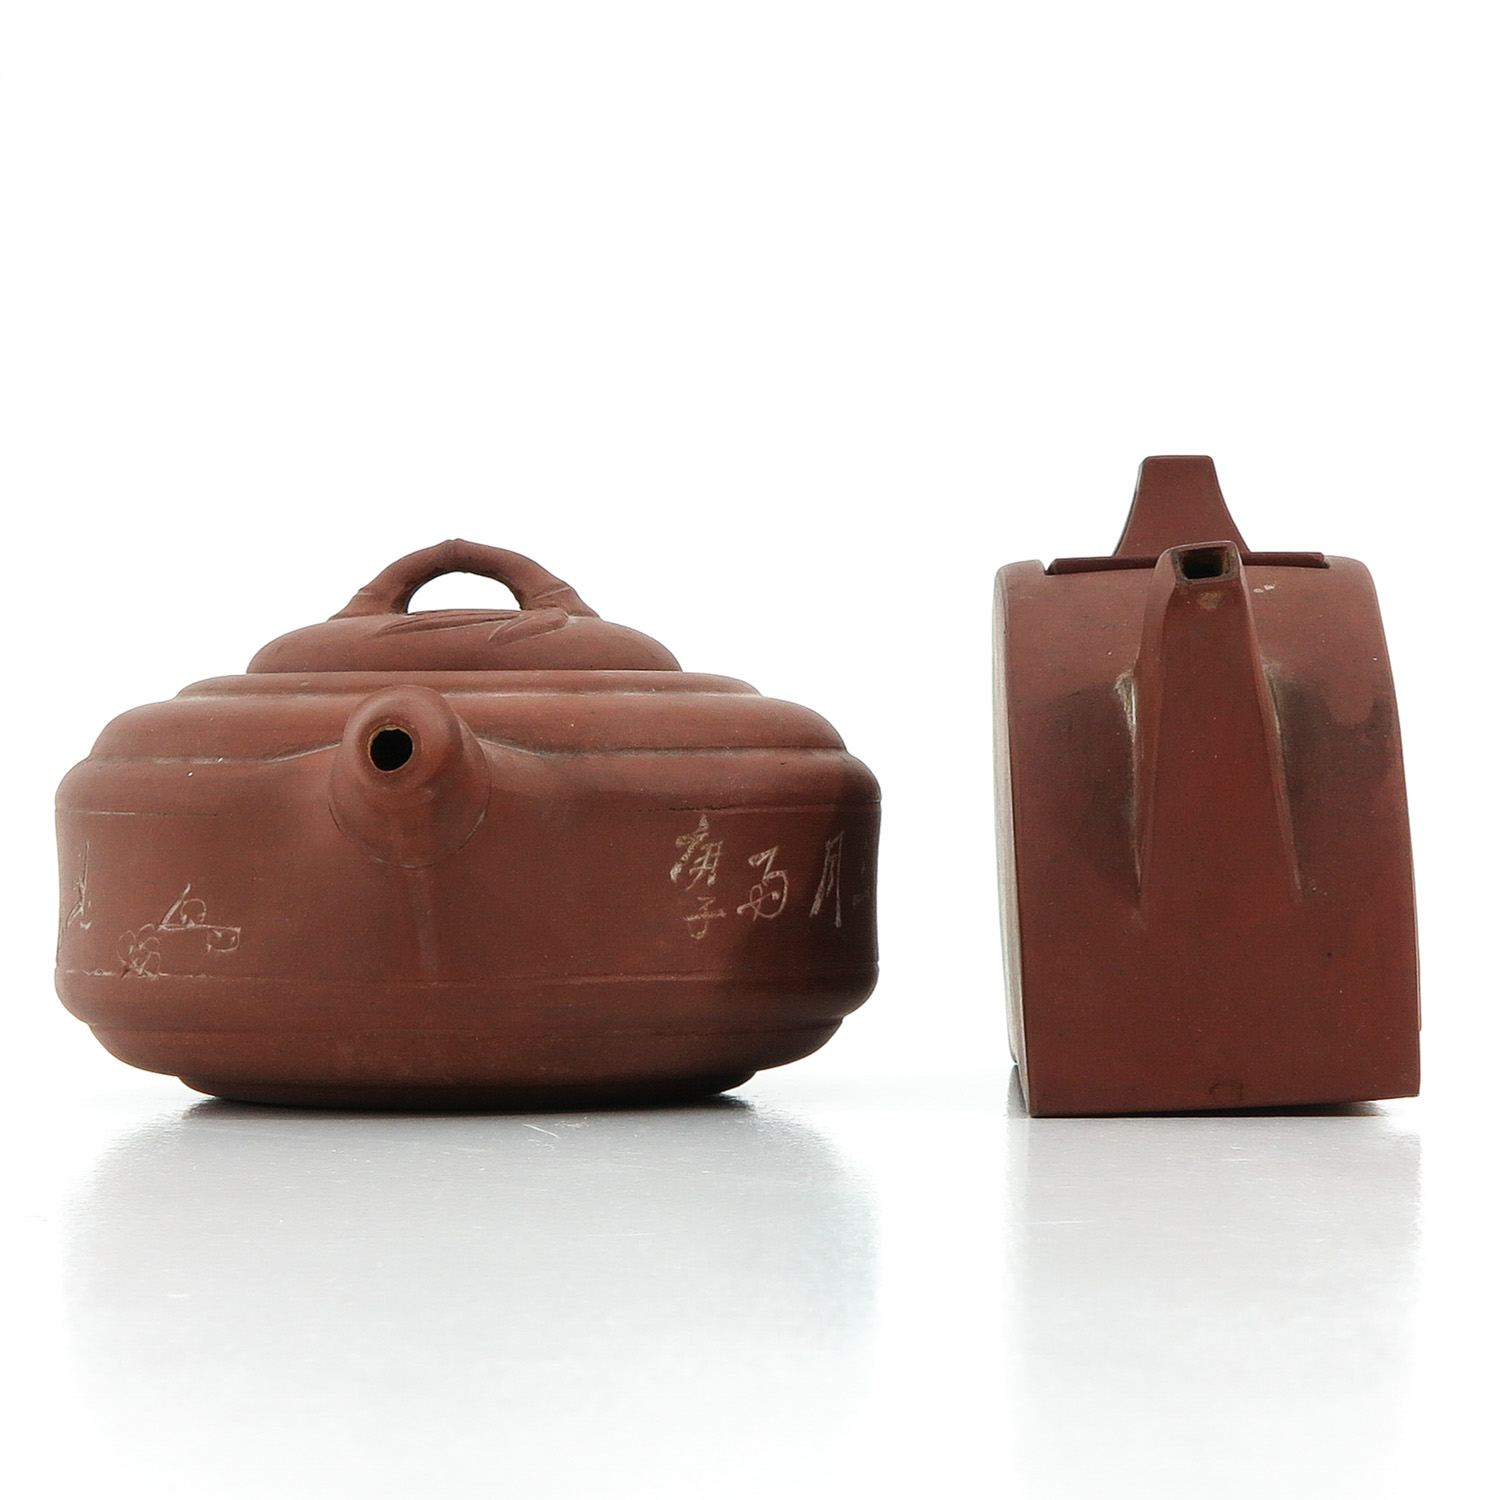 A Lot of 2 Yixing Teapots - Image 4 of 9